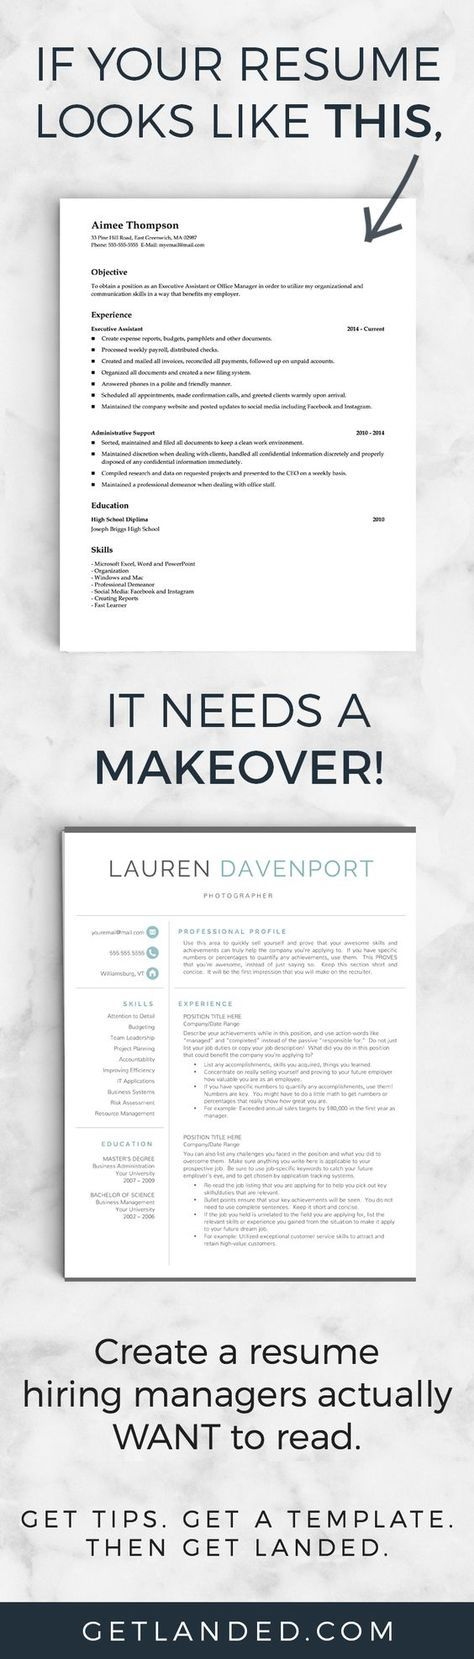 80 of candidates desperately need a resume makeover! Get a resume - perfect font for resume